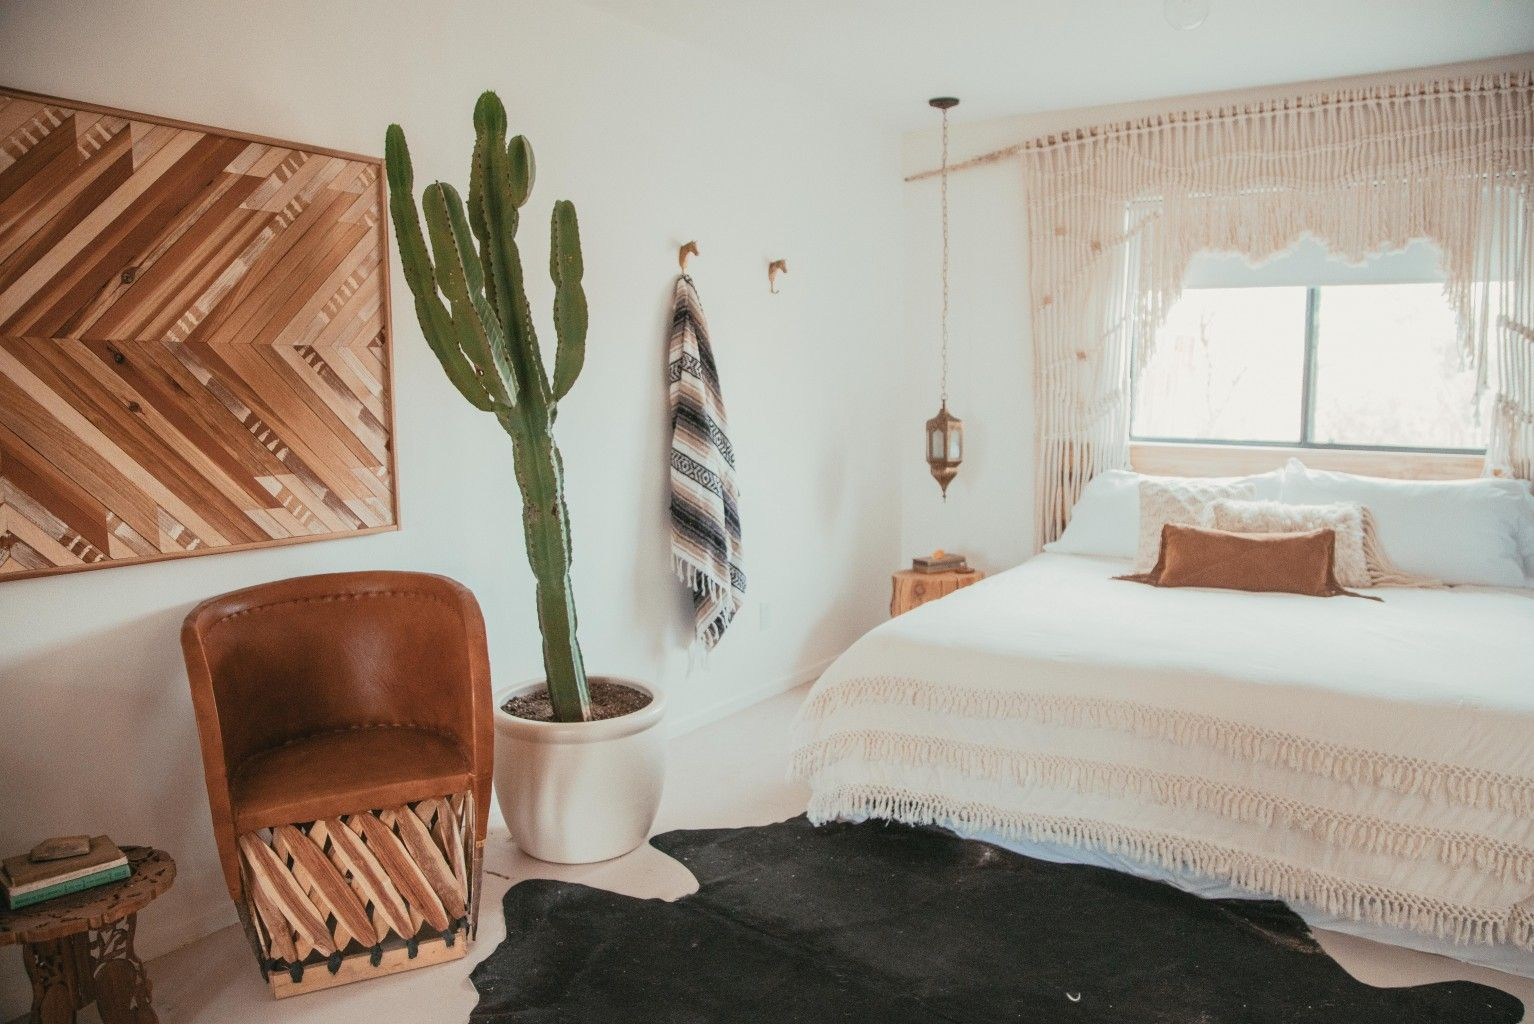 Airbnb Interiors: Desert Inspiration in The Joshua Tree House